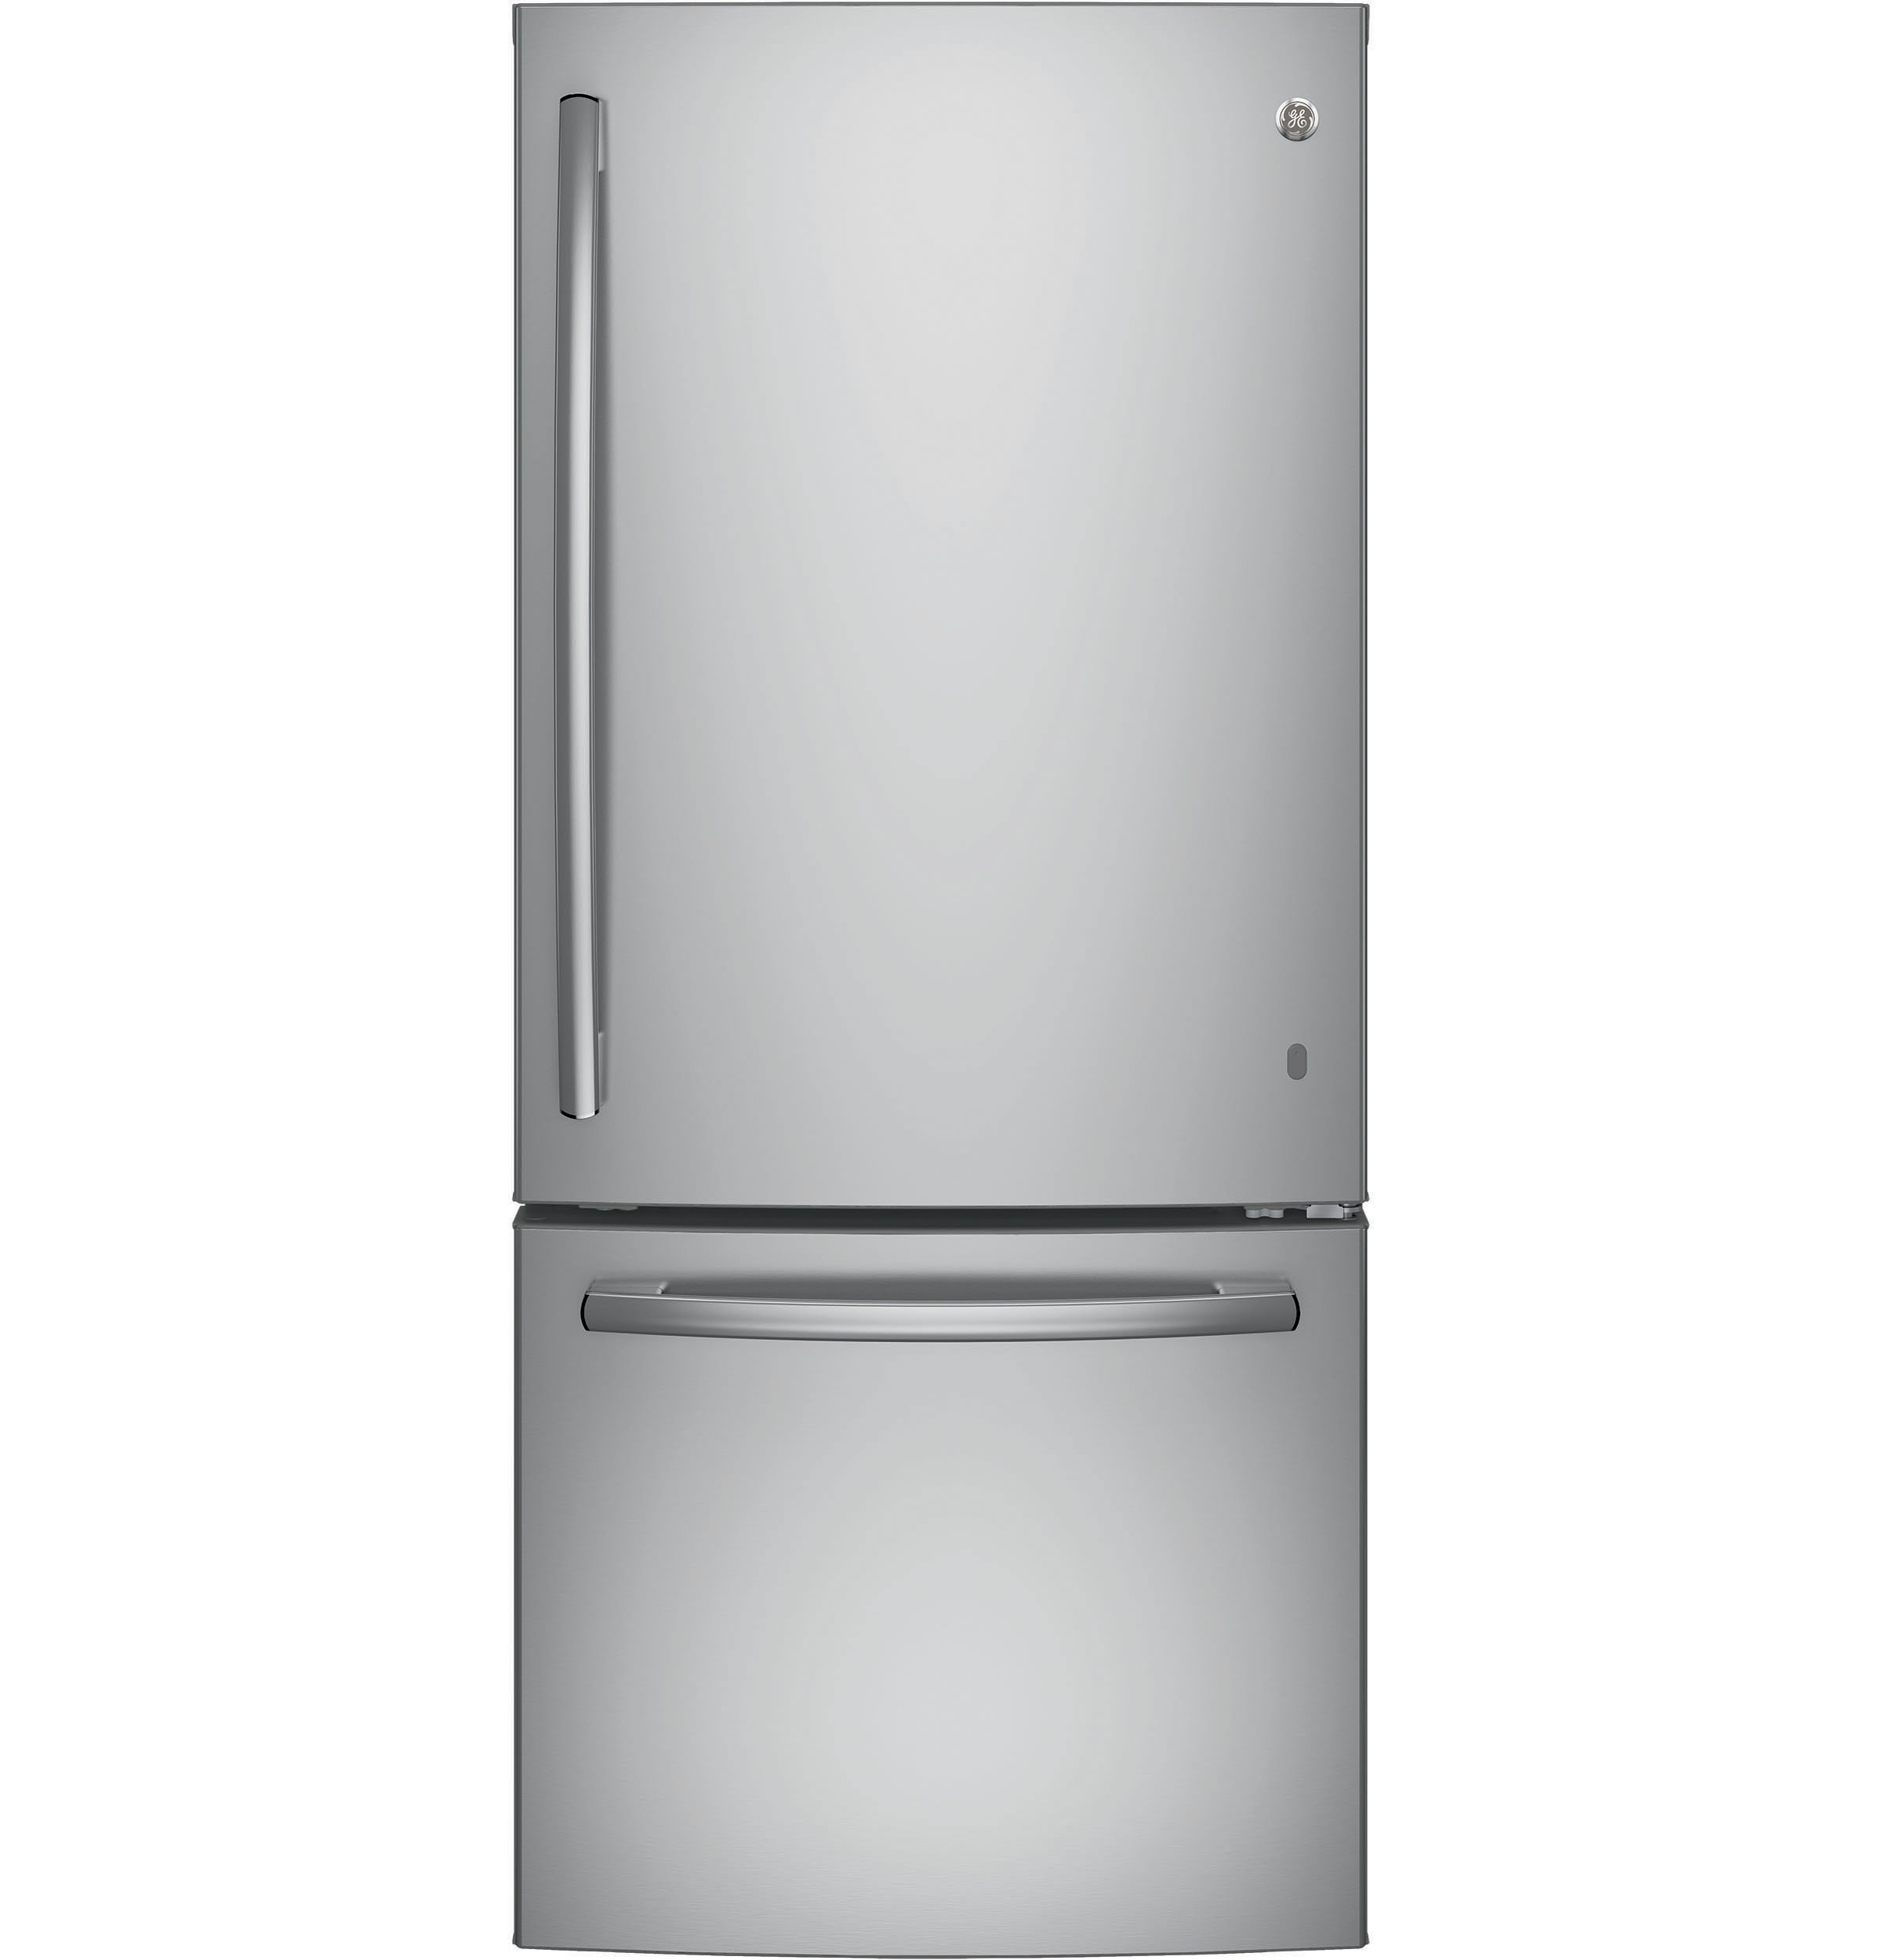 Model: GDE21ESKSS | GE GE® ENERGY STAR® 21.0 Cu. Ft. Bottom-Freezer Refrigerator